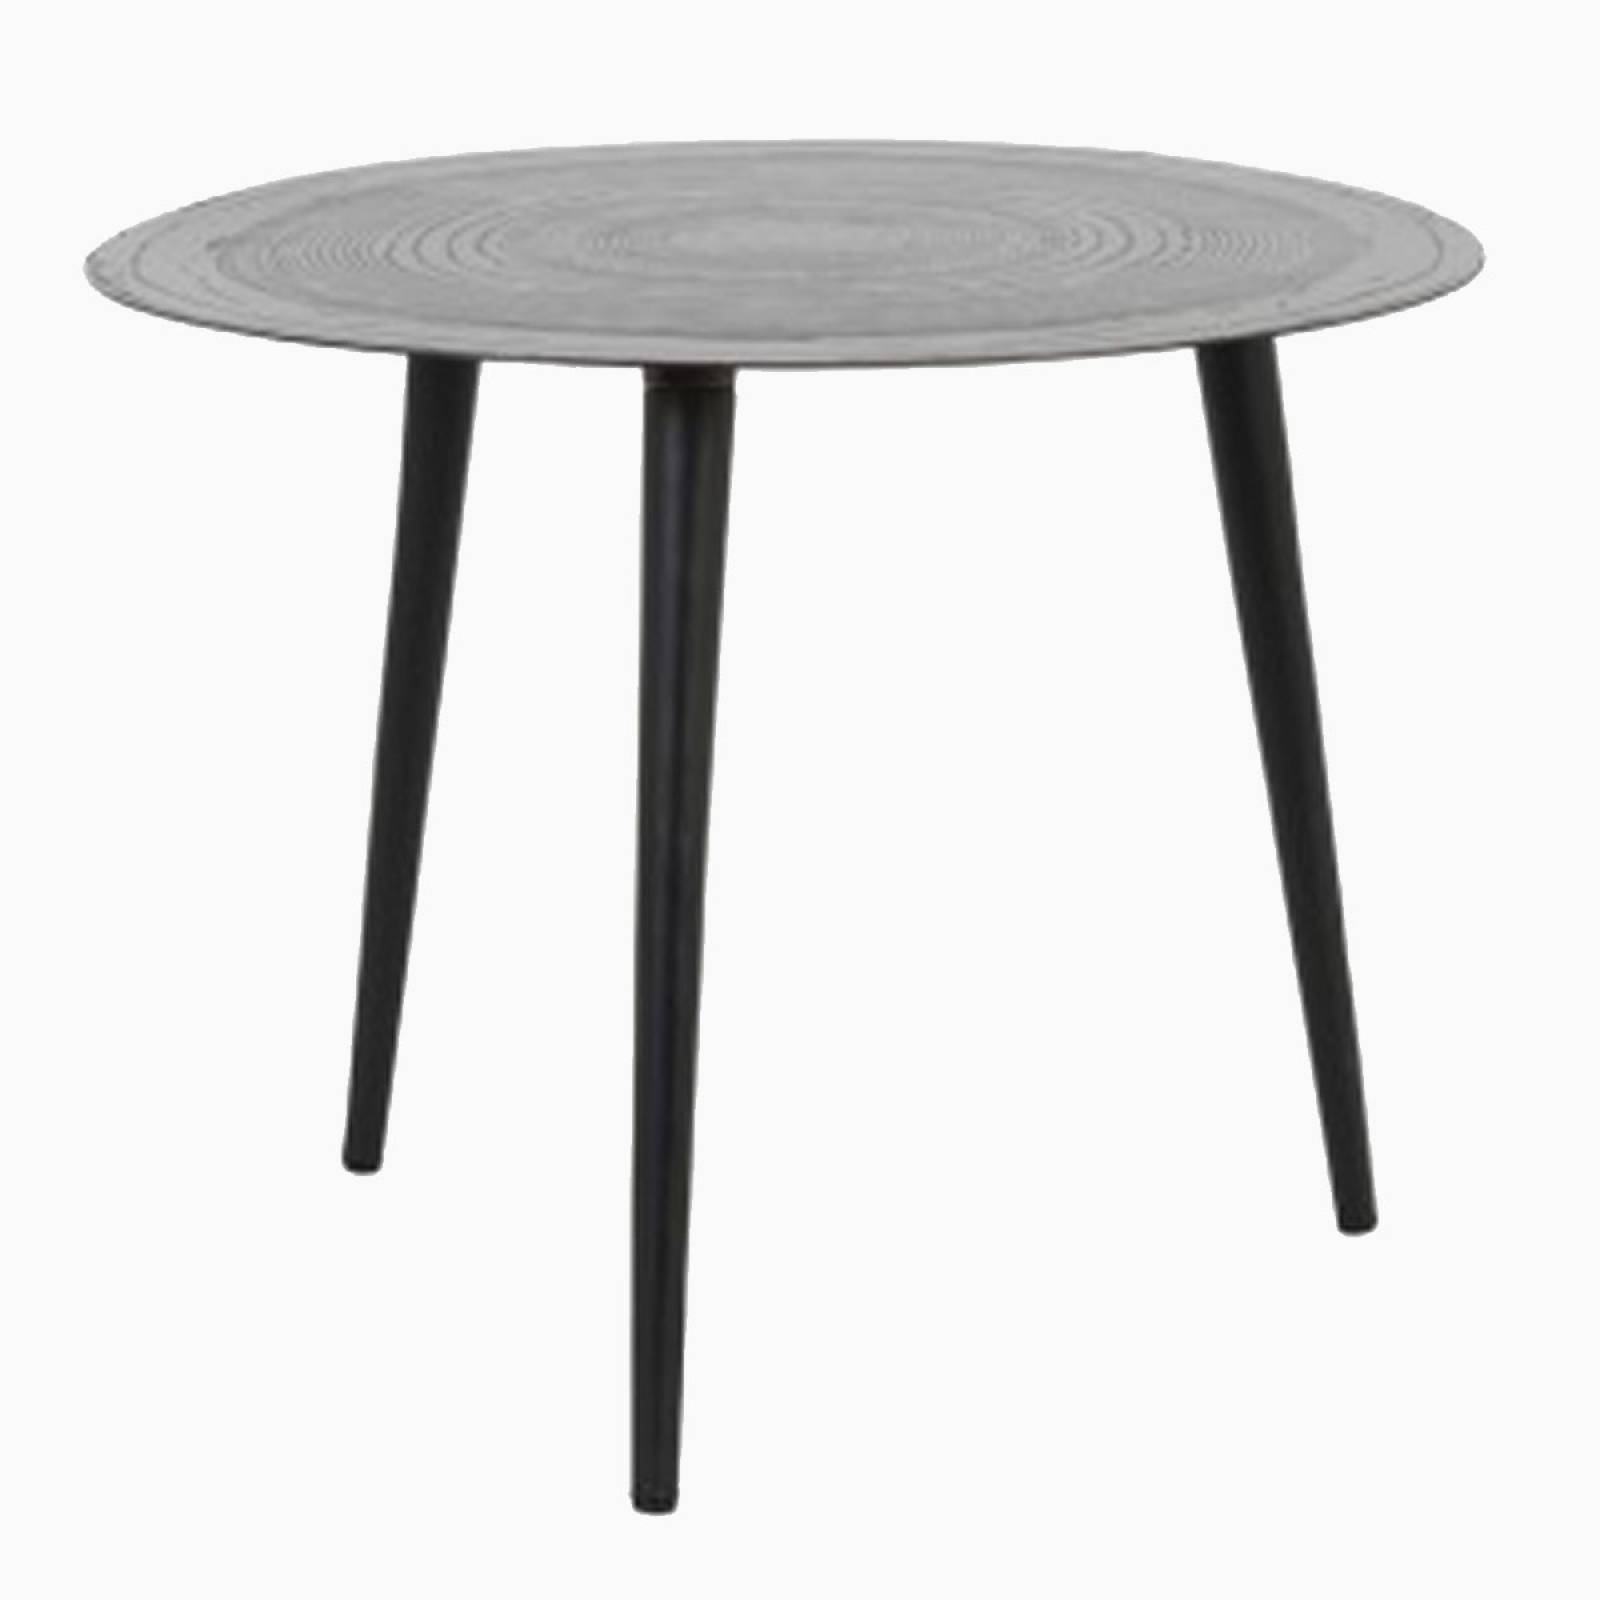 Trunk Round Metal Table Matted Black 50x39cm